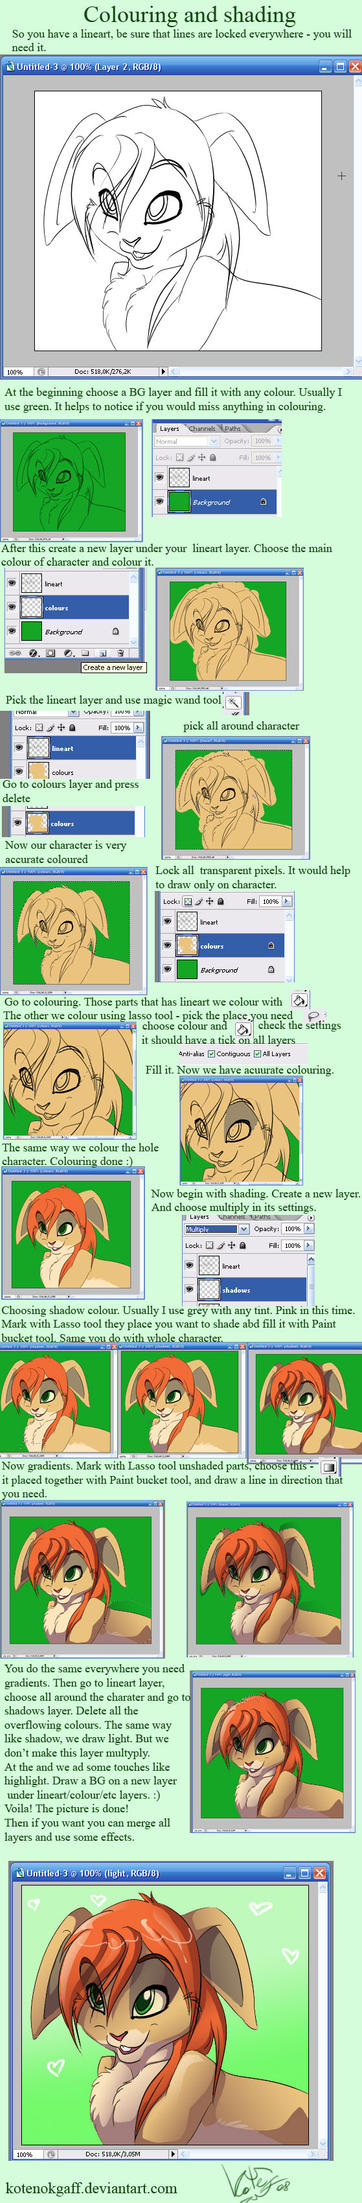 Colouring and shading tutorial by kotenokgaff